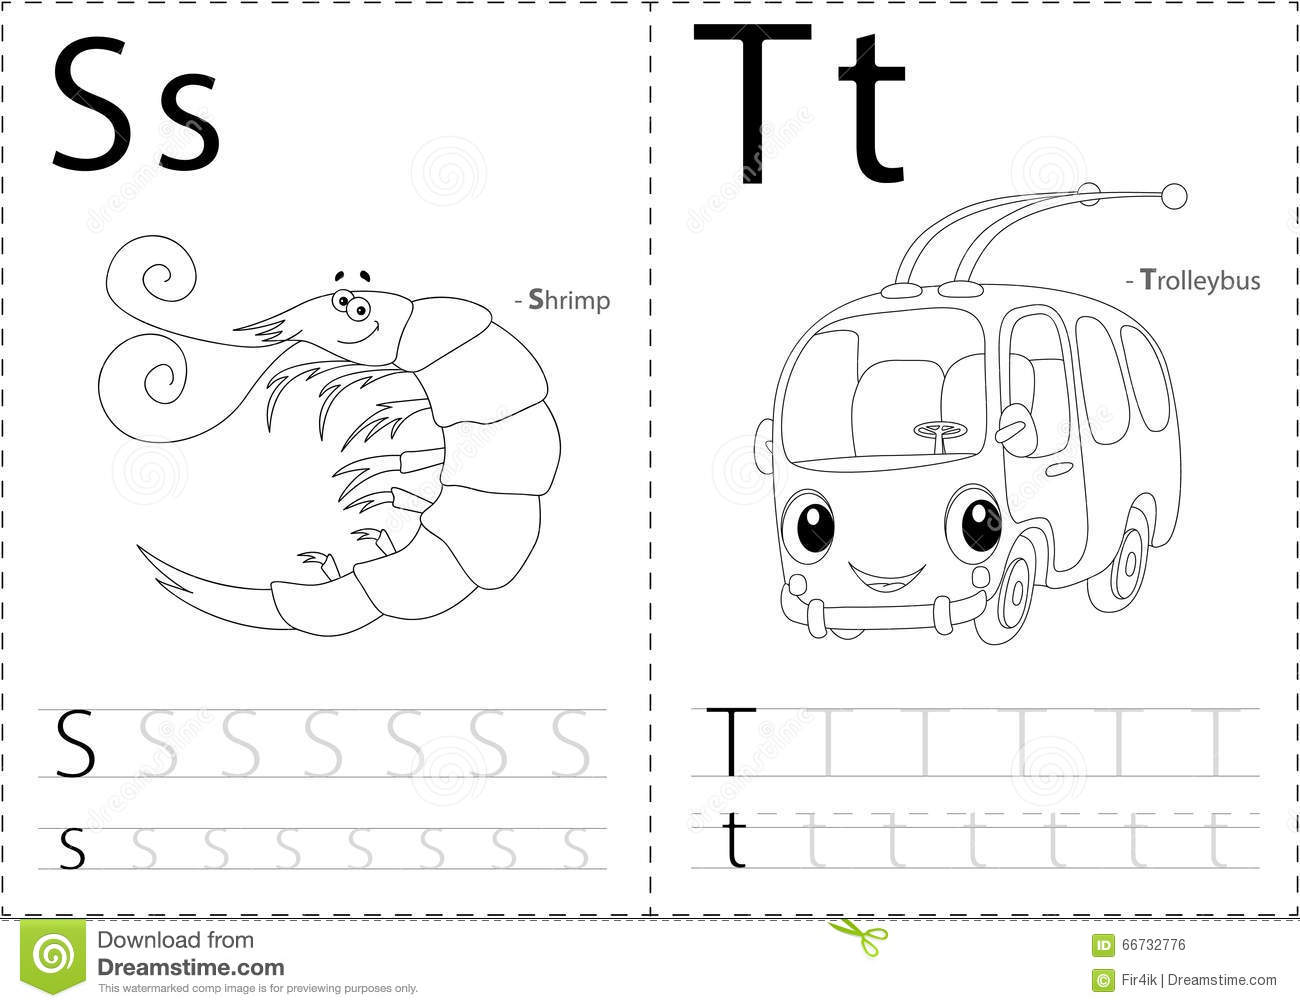 Cartoon Shrimp And Trolleybus Alphabet Tracing Worksheet